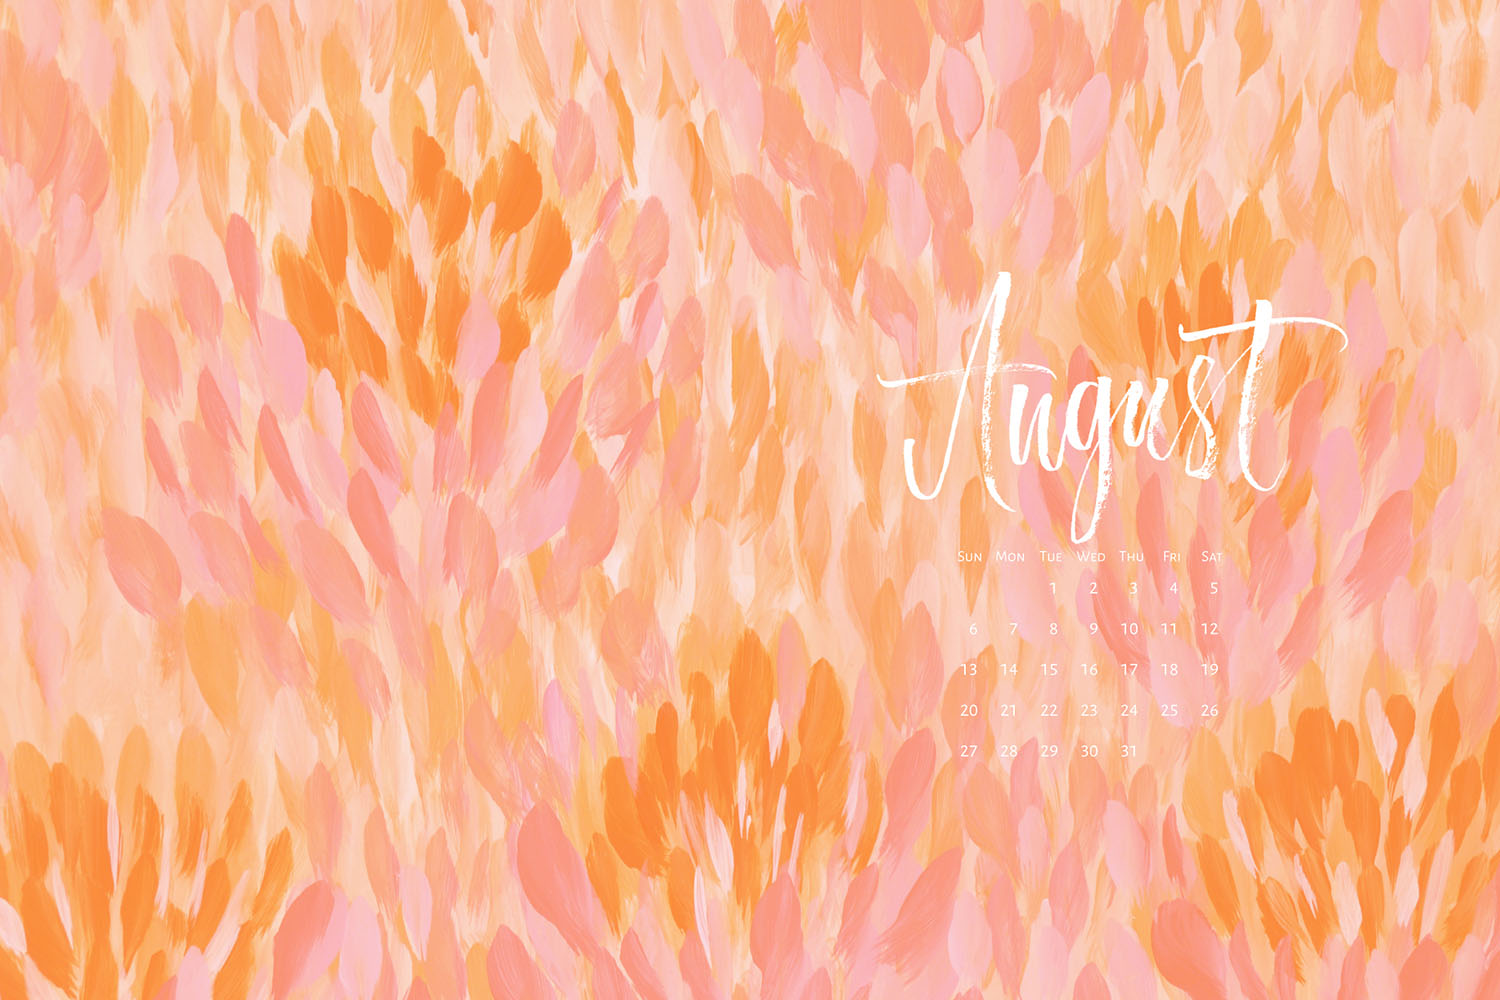 Download a free calendar for August 2017 |©typeandgraphicslab.com | For personal use only